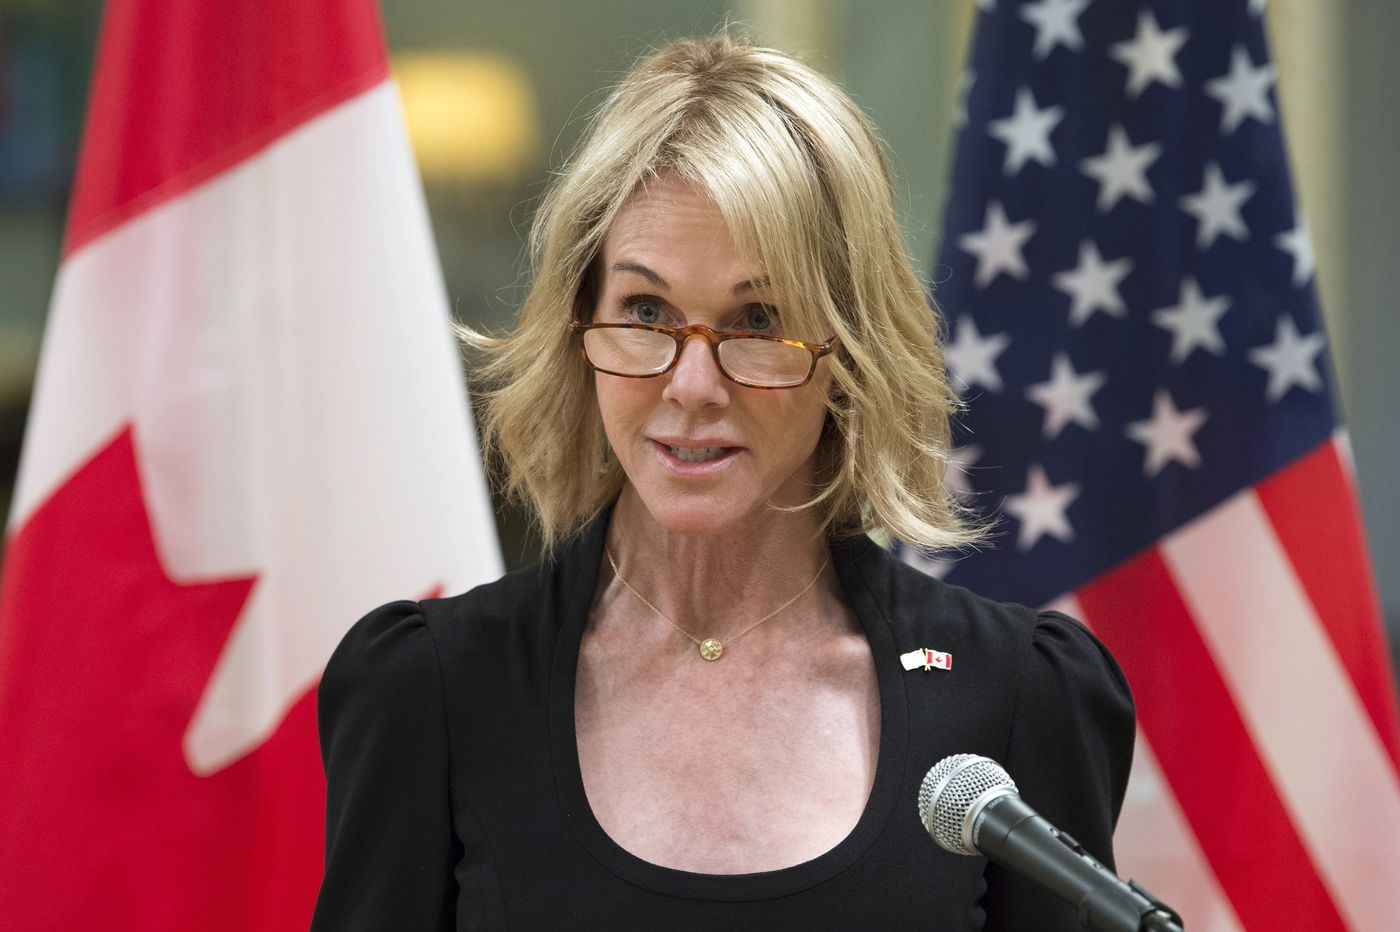 U.S. ambassador to Canada emerges as favorite for U.N. post